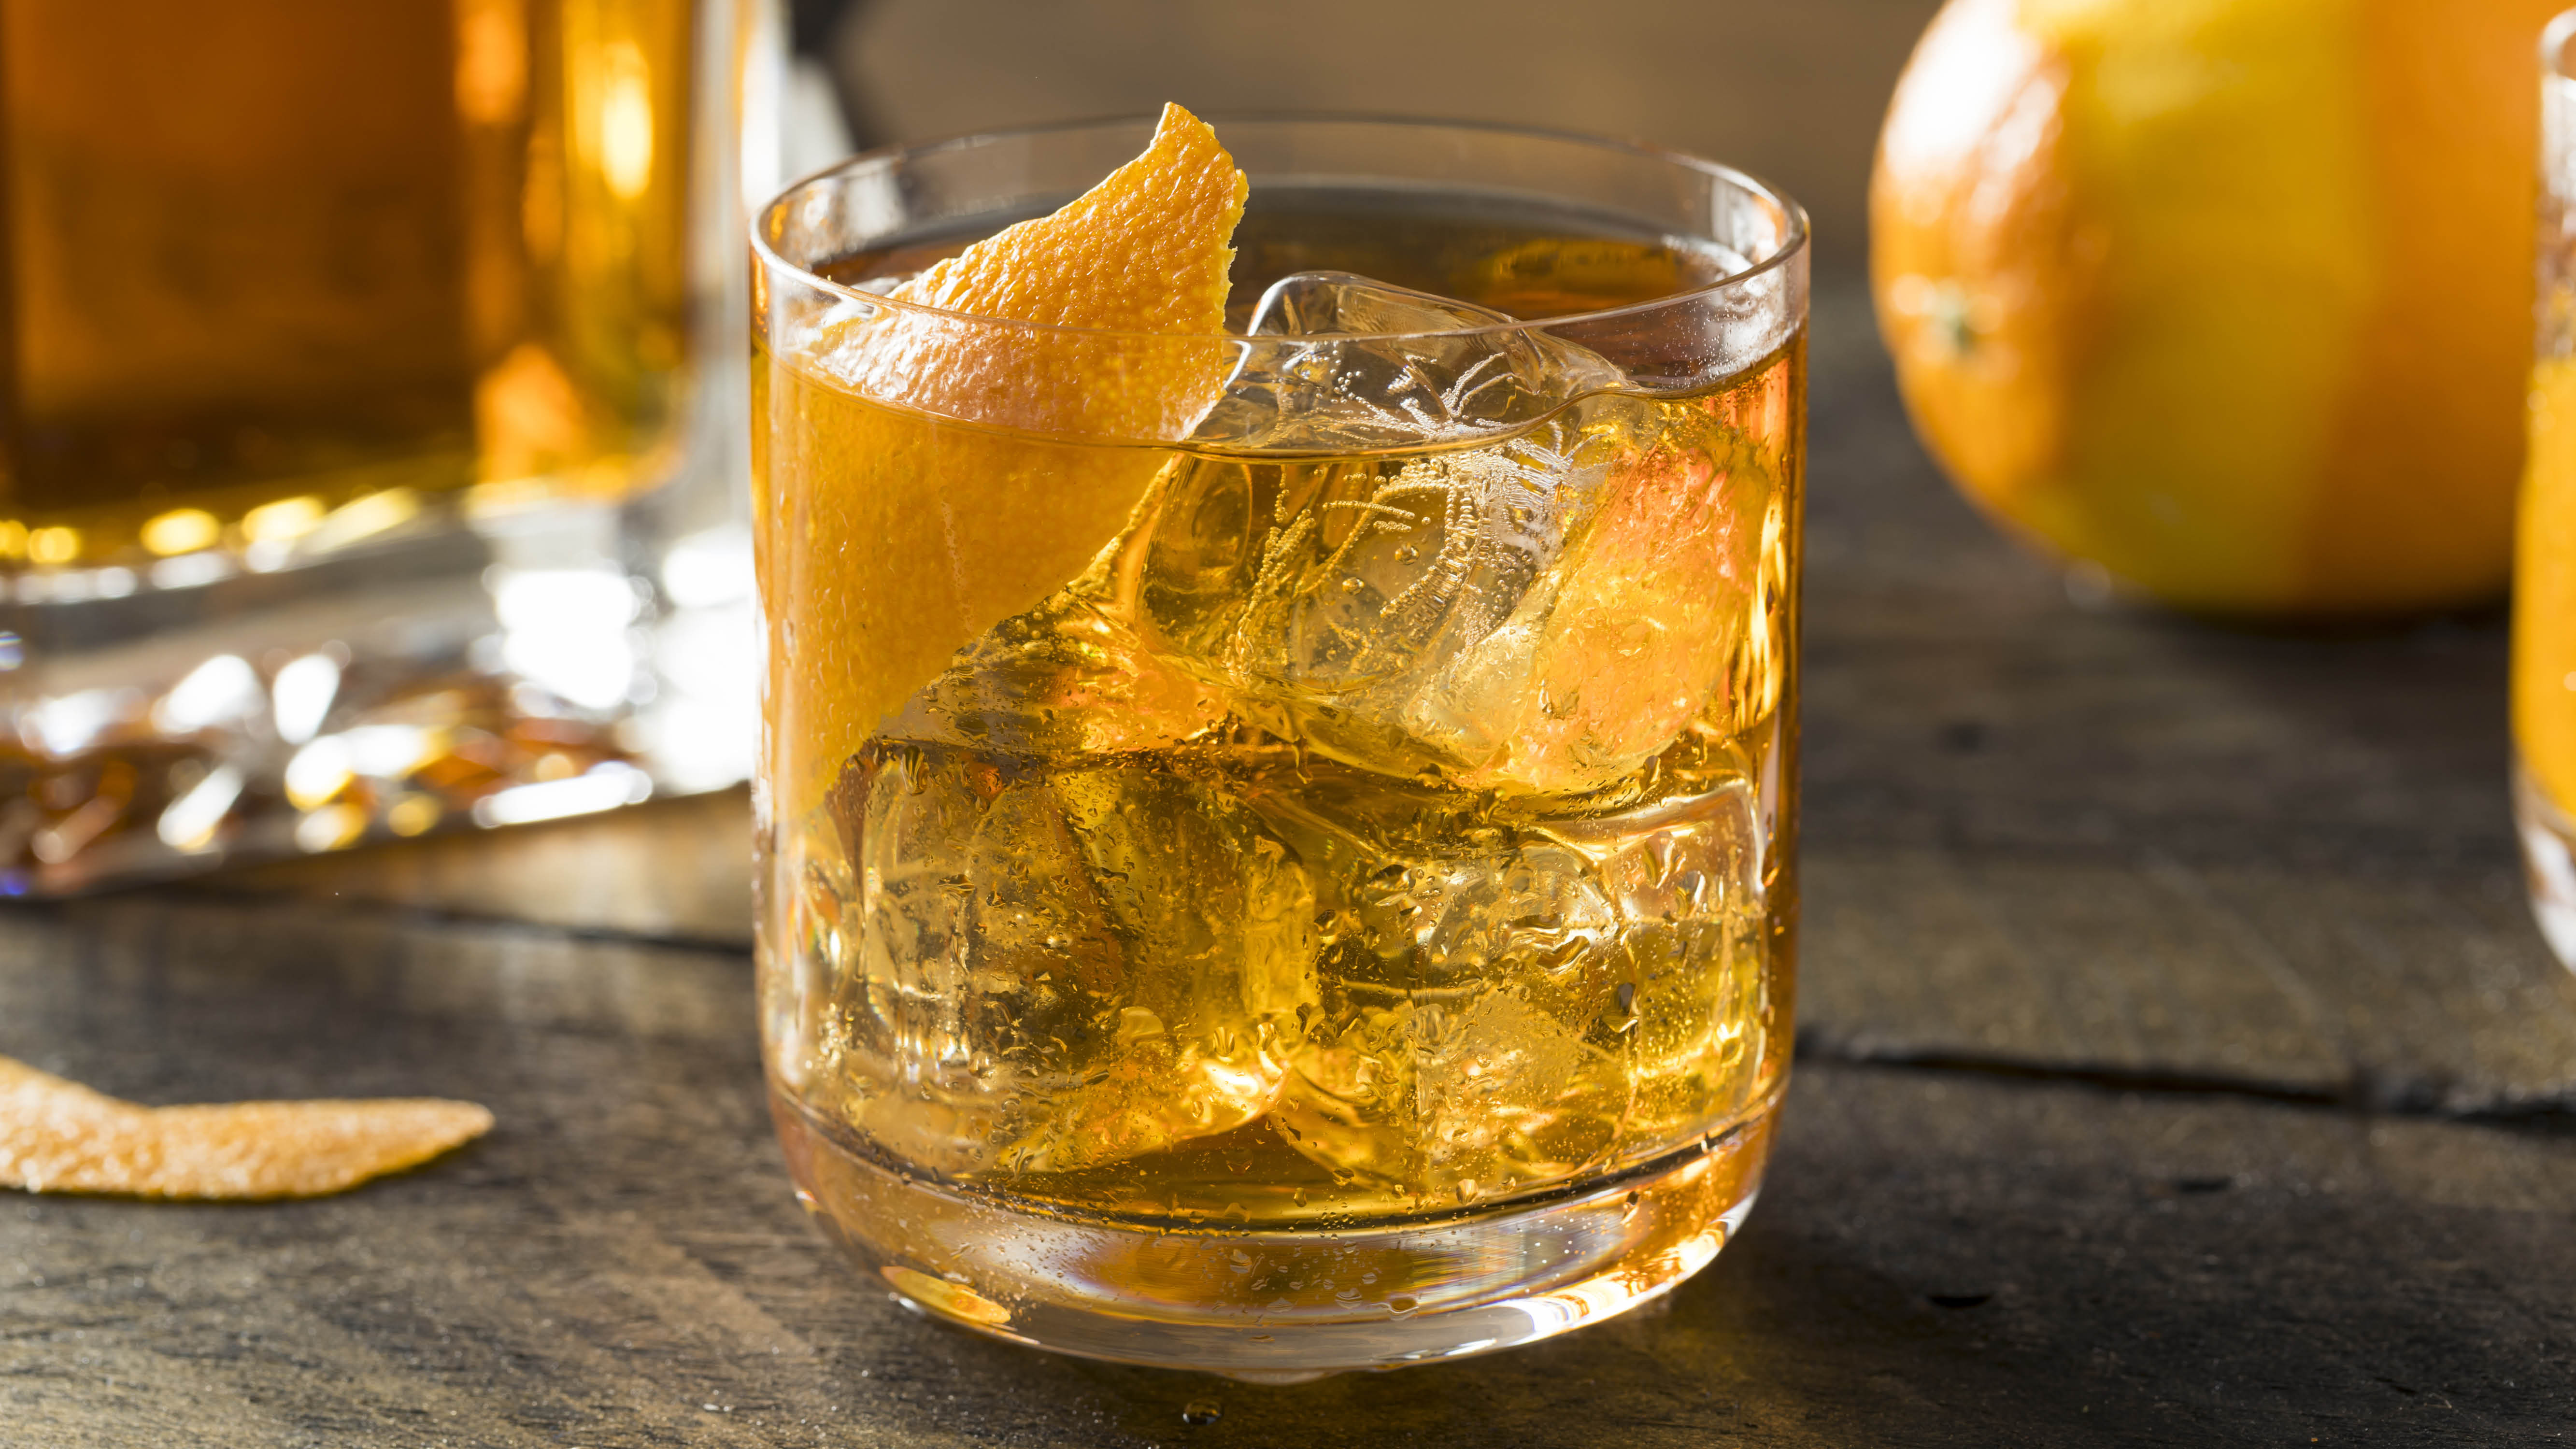 cocktail-whisky-or-bourbon-lemon-cocoktail.jpg